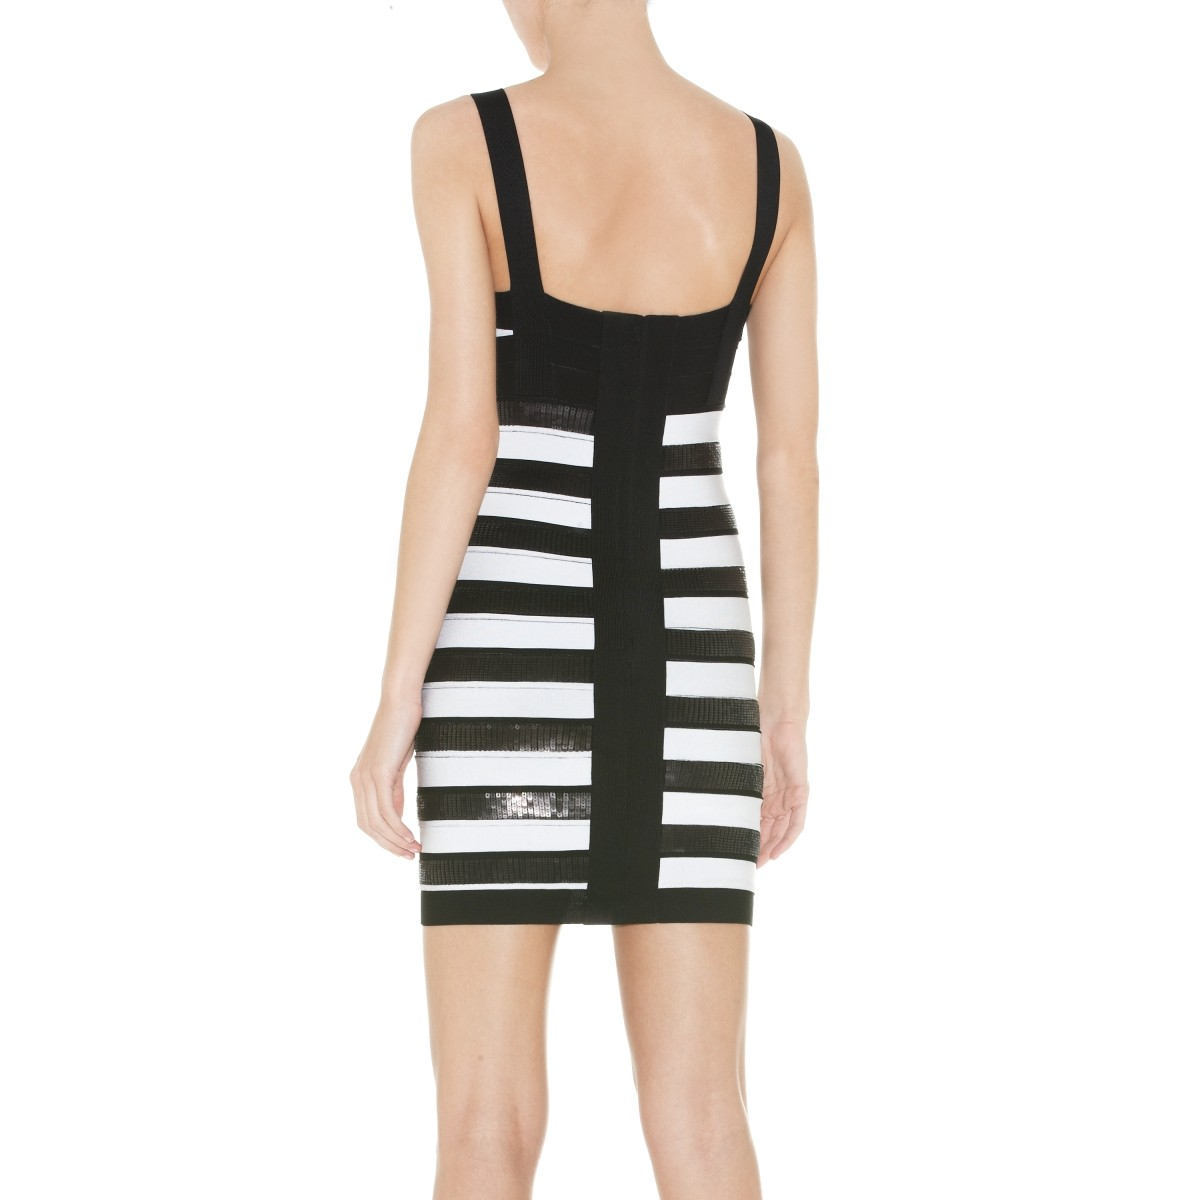 Herve Leger Anika Sequined Jacquard Bandage Dress